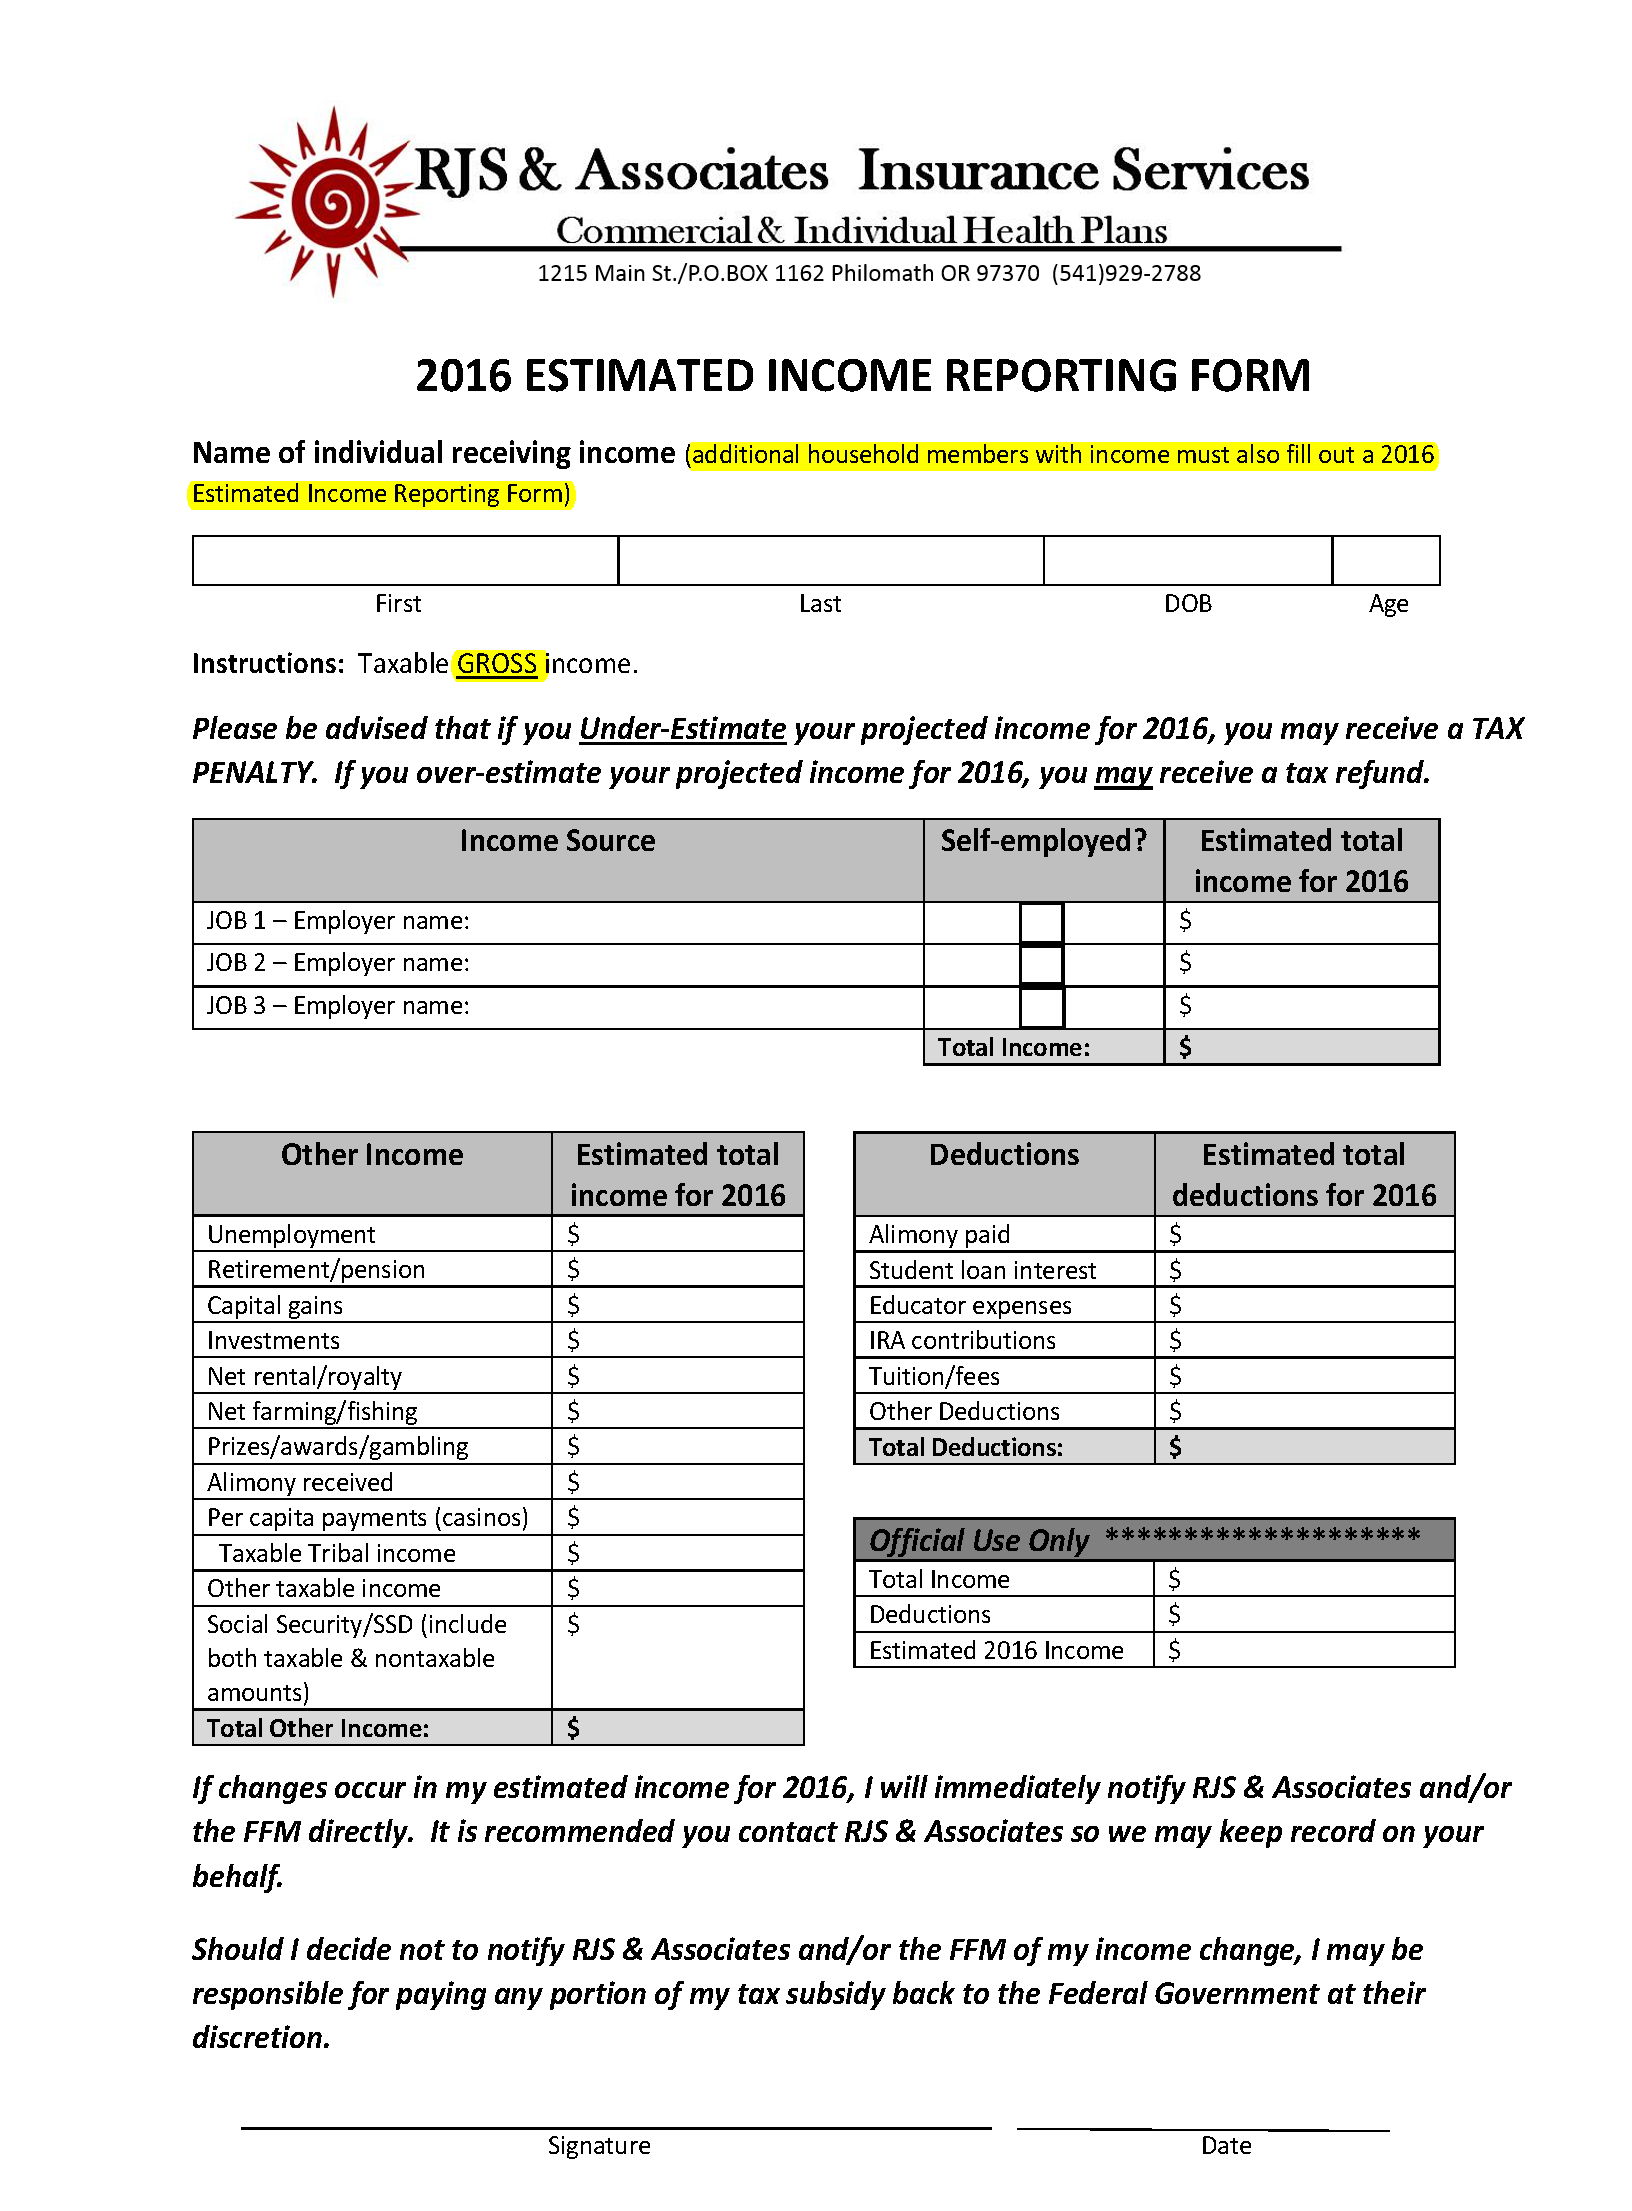 Income Reporting Form (2016) - Fillable